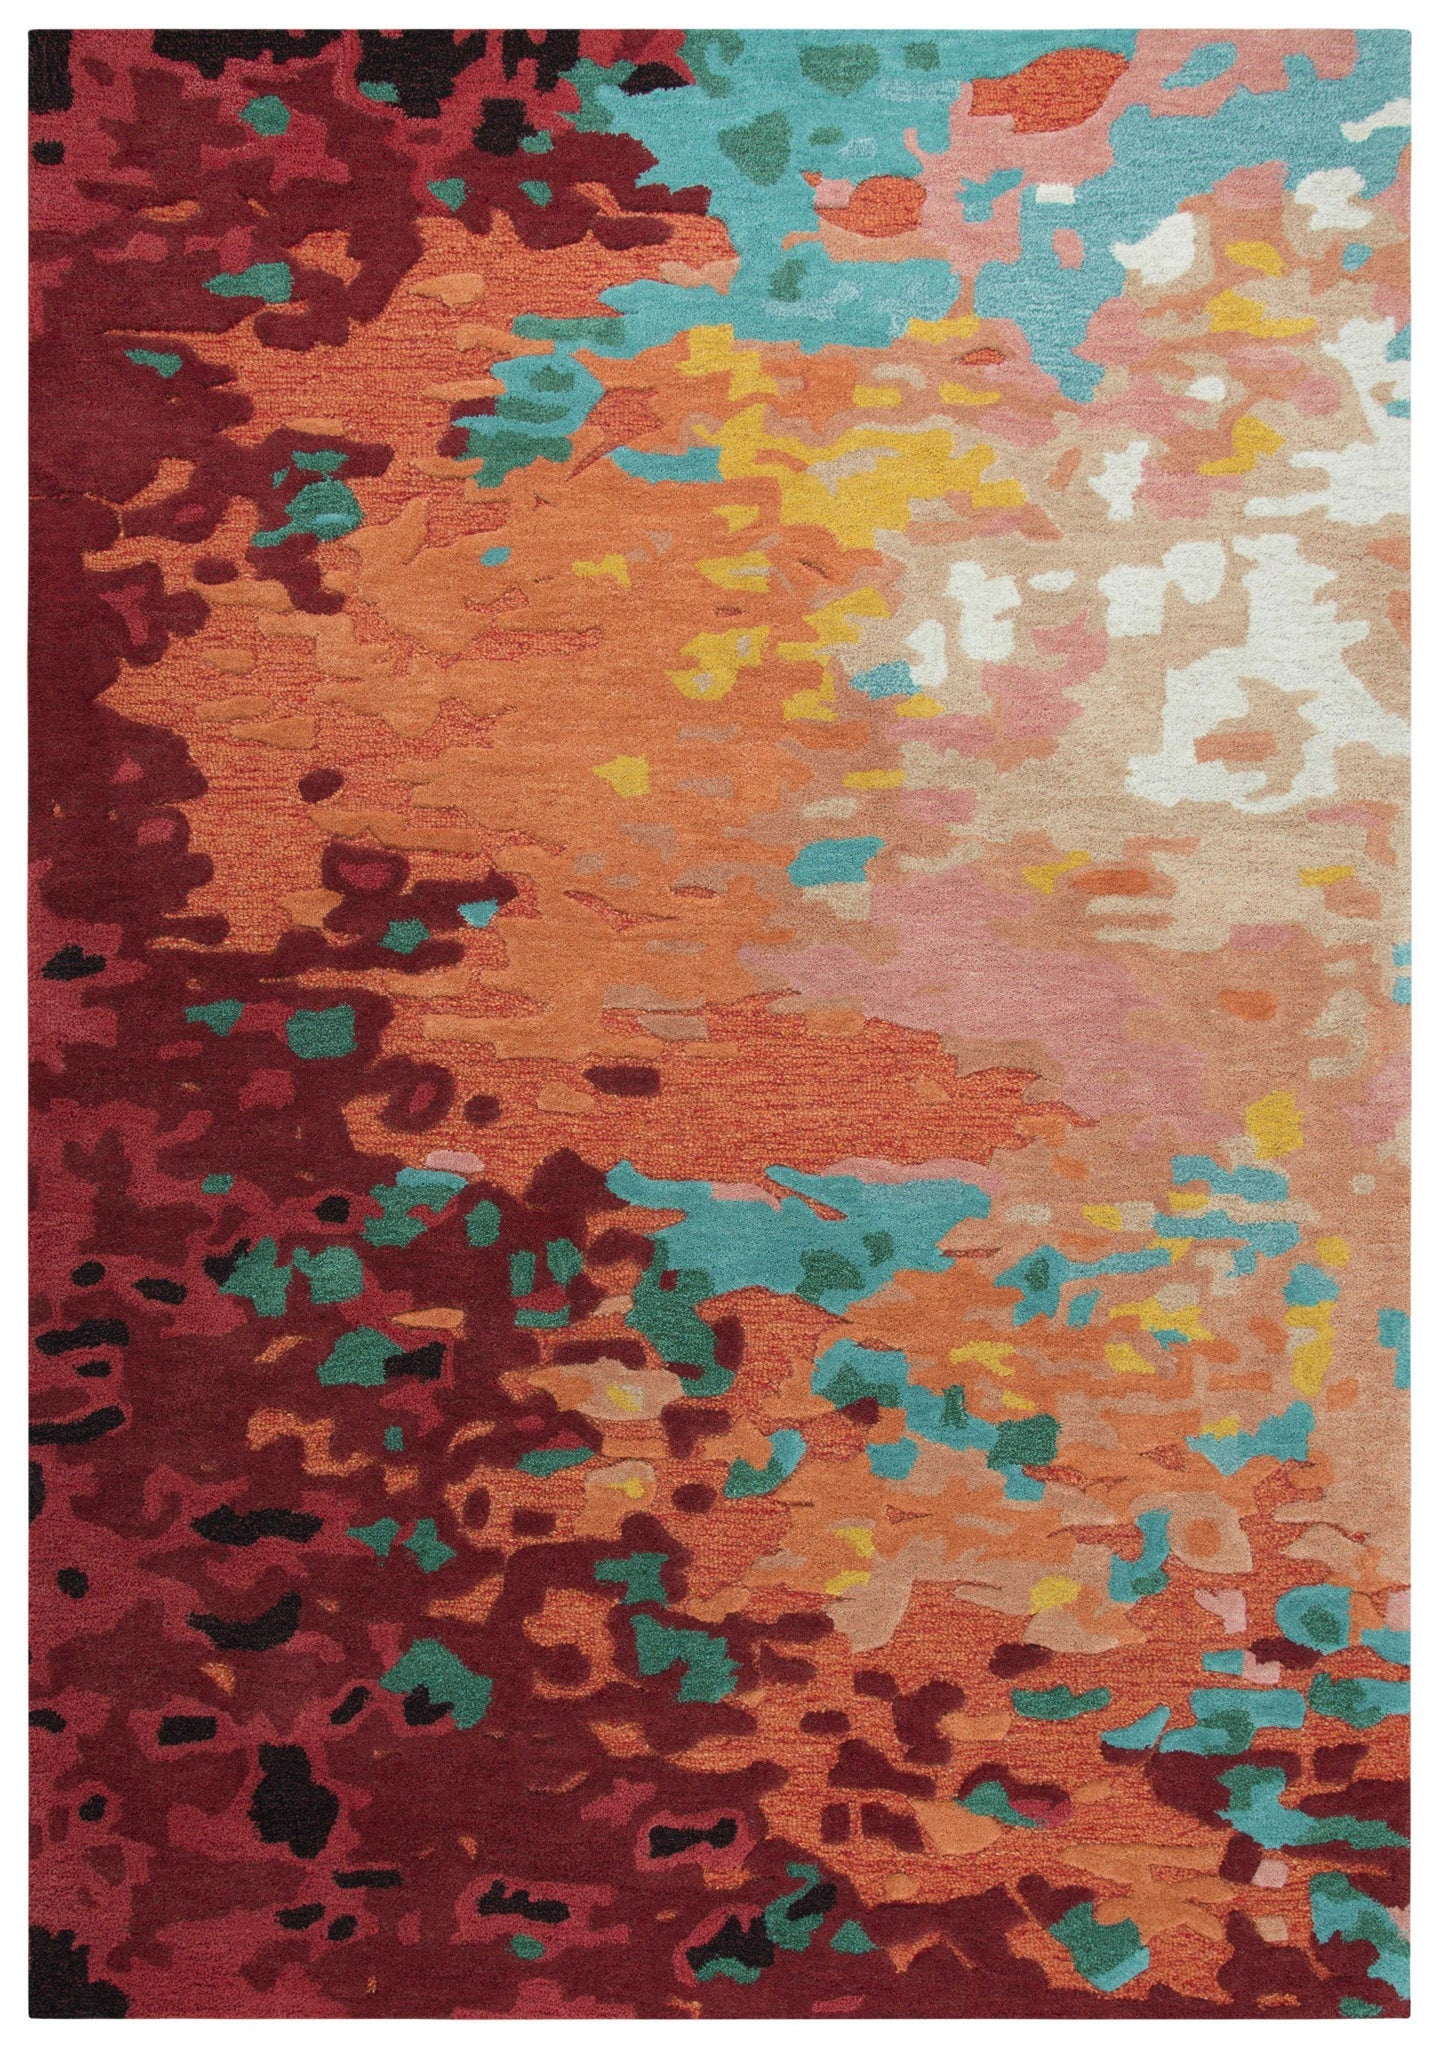 Rug Depot Home Area Rugs Connie Post Area Rugs CNP101Rust Modern 100% Wool With Unique Shapes